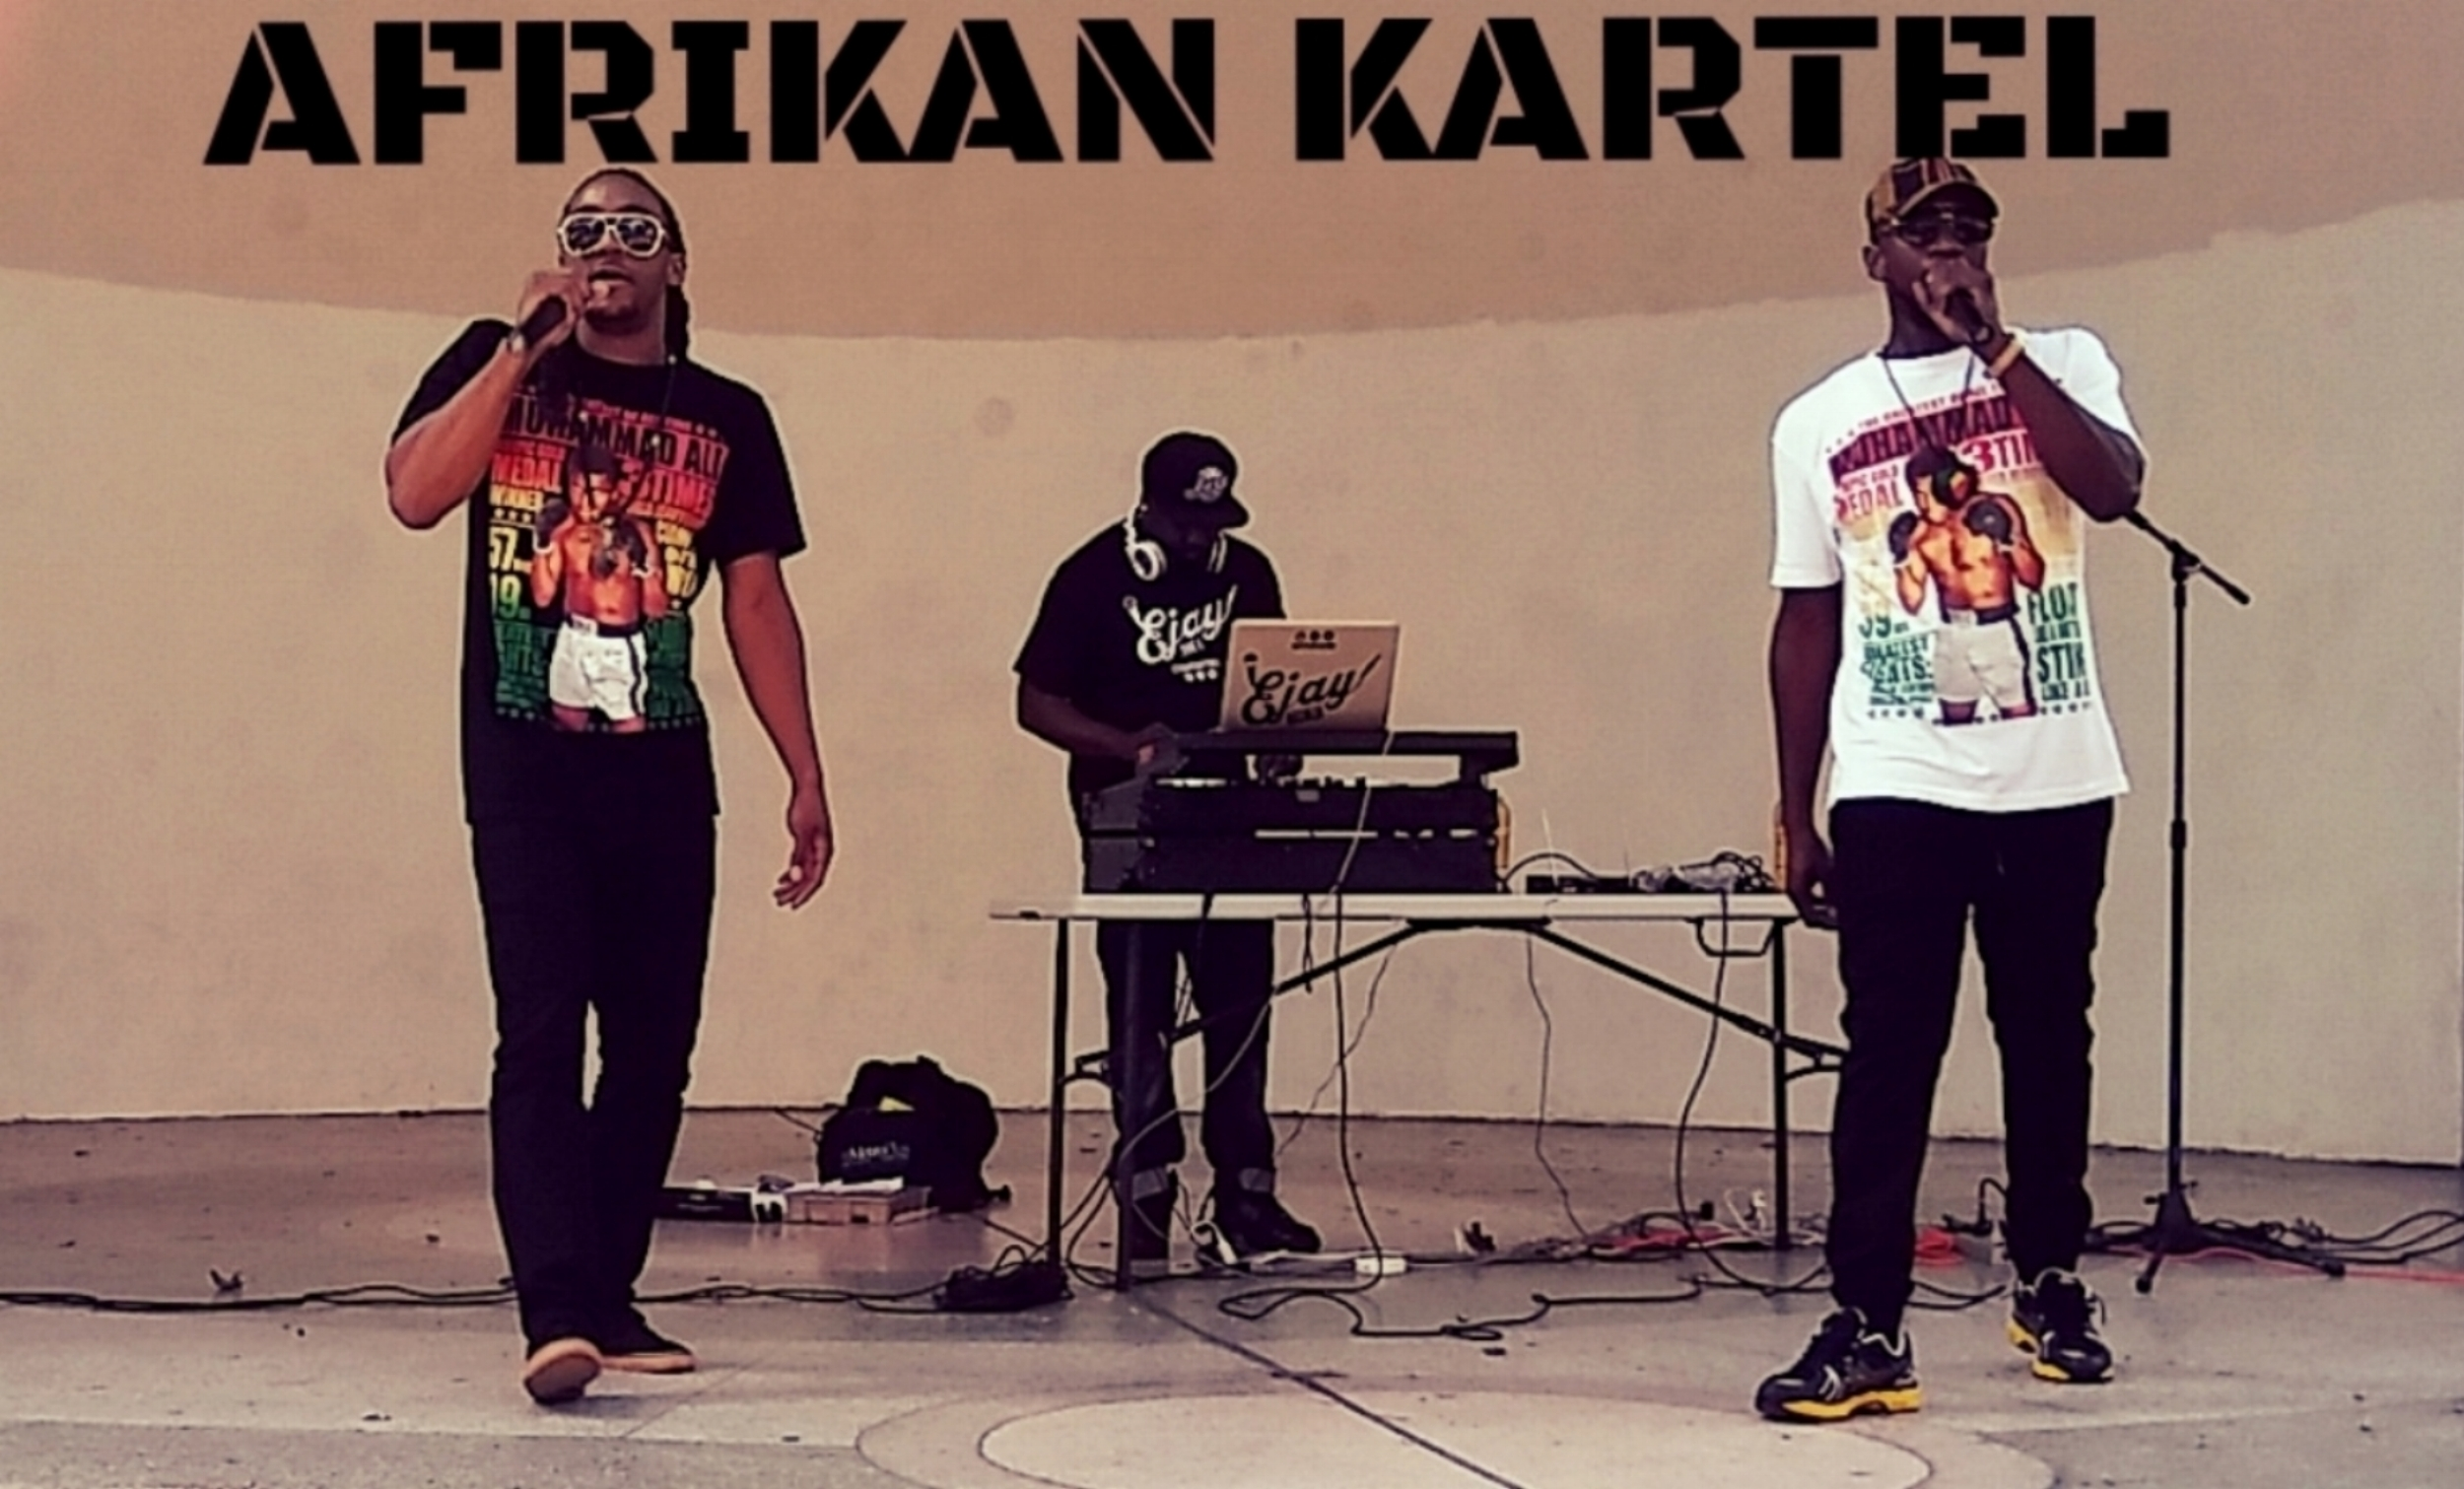 AFRIKAN KARTEL SPREADING POSITIVE VIBRATIONS THROUGH WORD, SOUND, & POWER @ THE 2ND ANNUAL PEACE & UNITY CONCERT IN NYC'S JACKIE ROBINSON PARK!!!